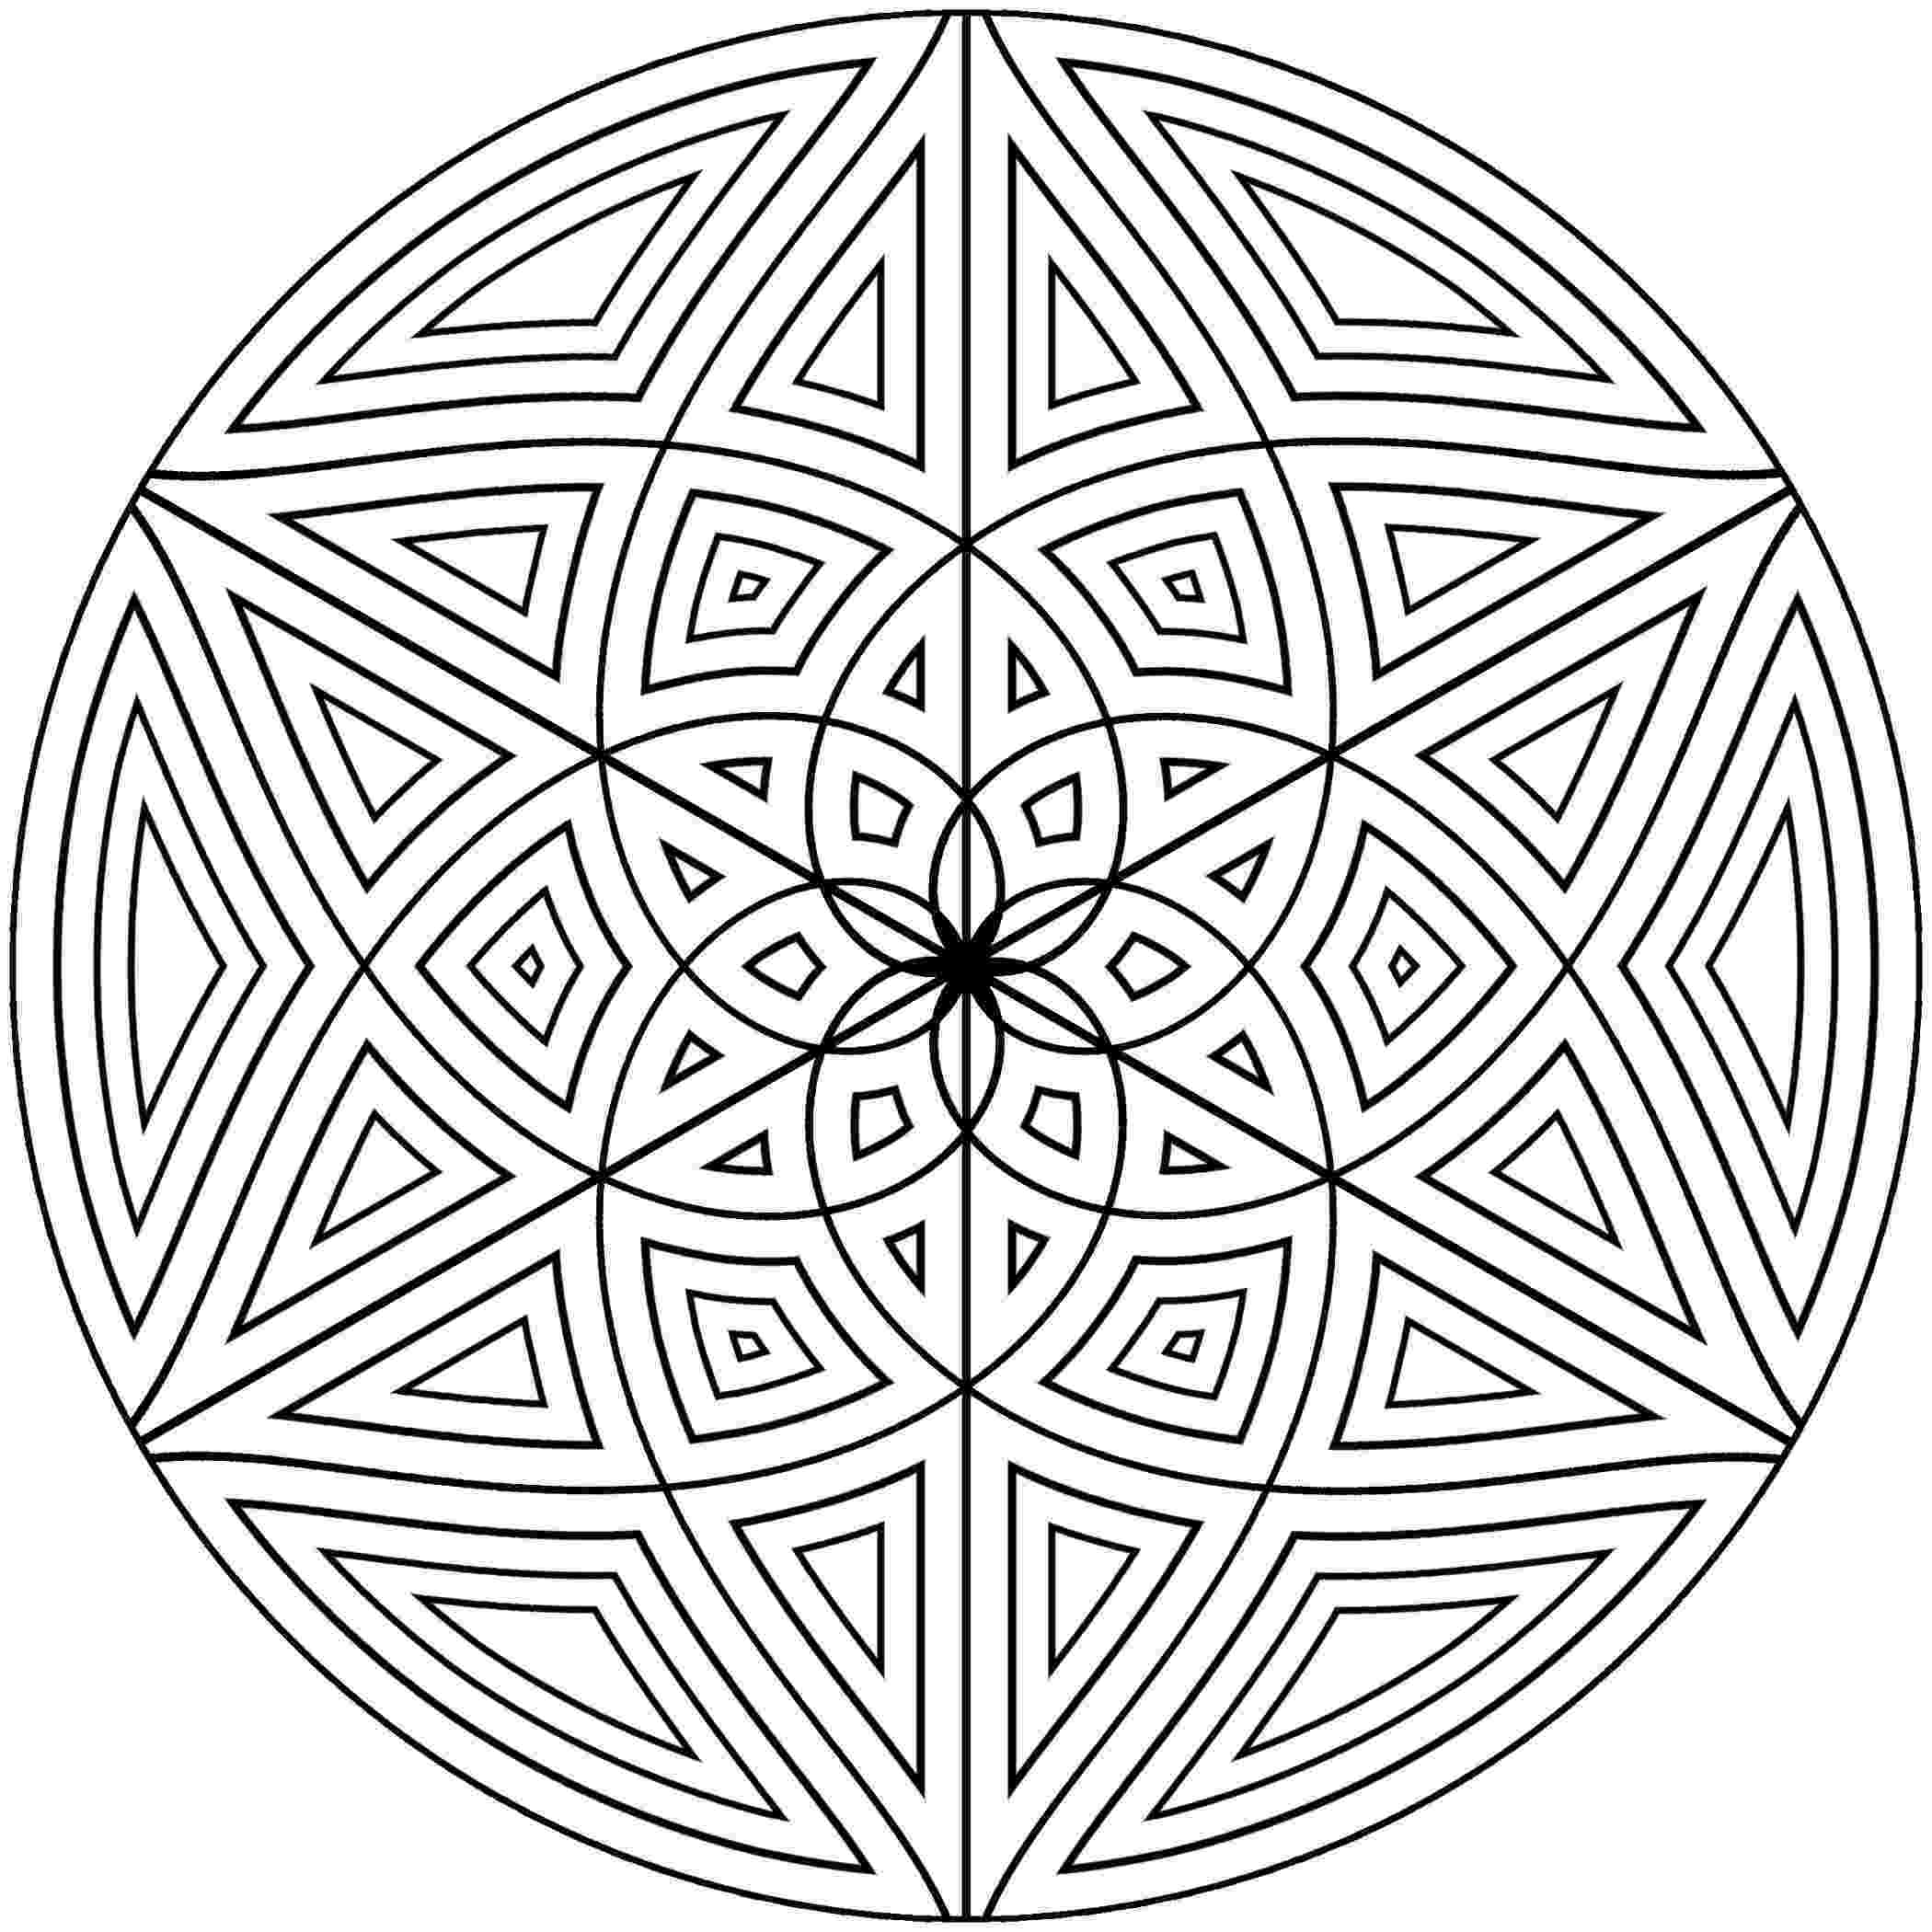 printable colouring patterns free printable geometric coloring pages for kids patterns printable colouring 1 1